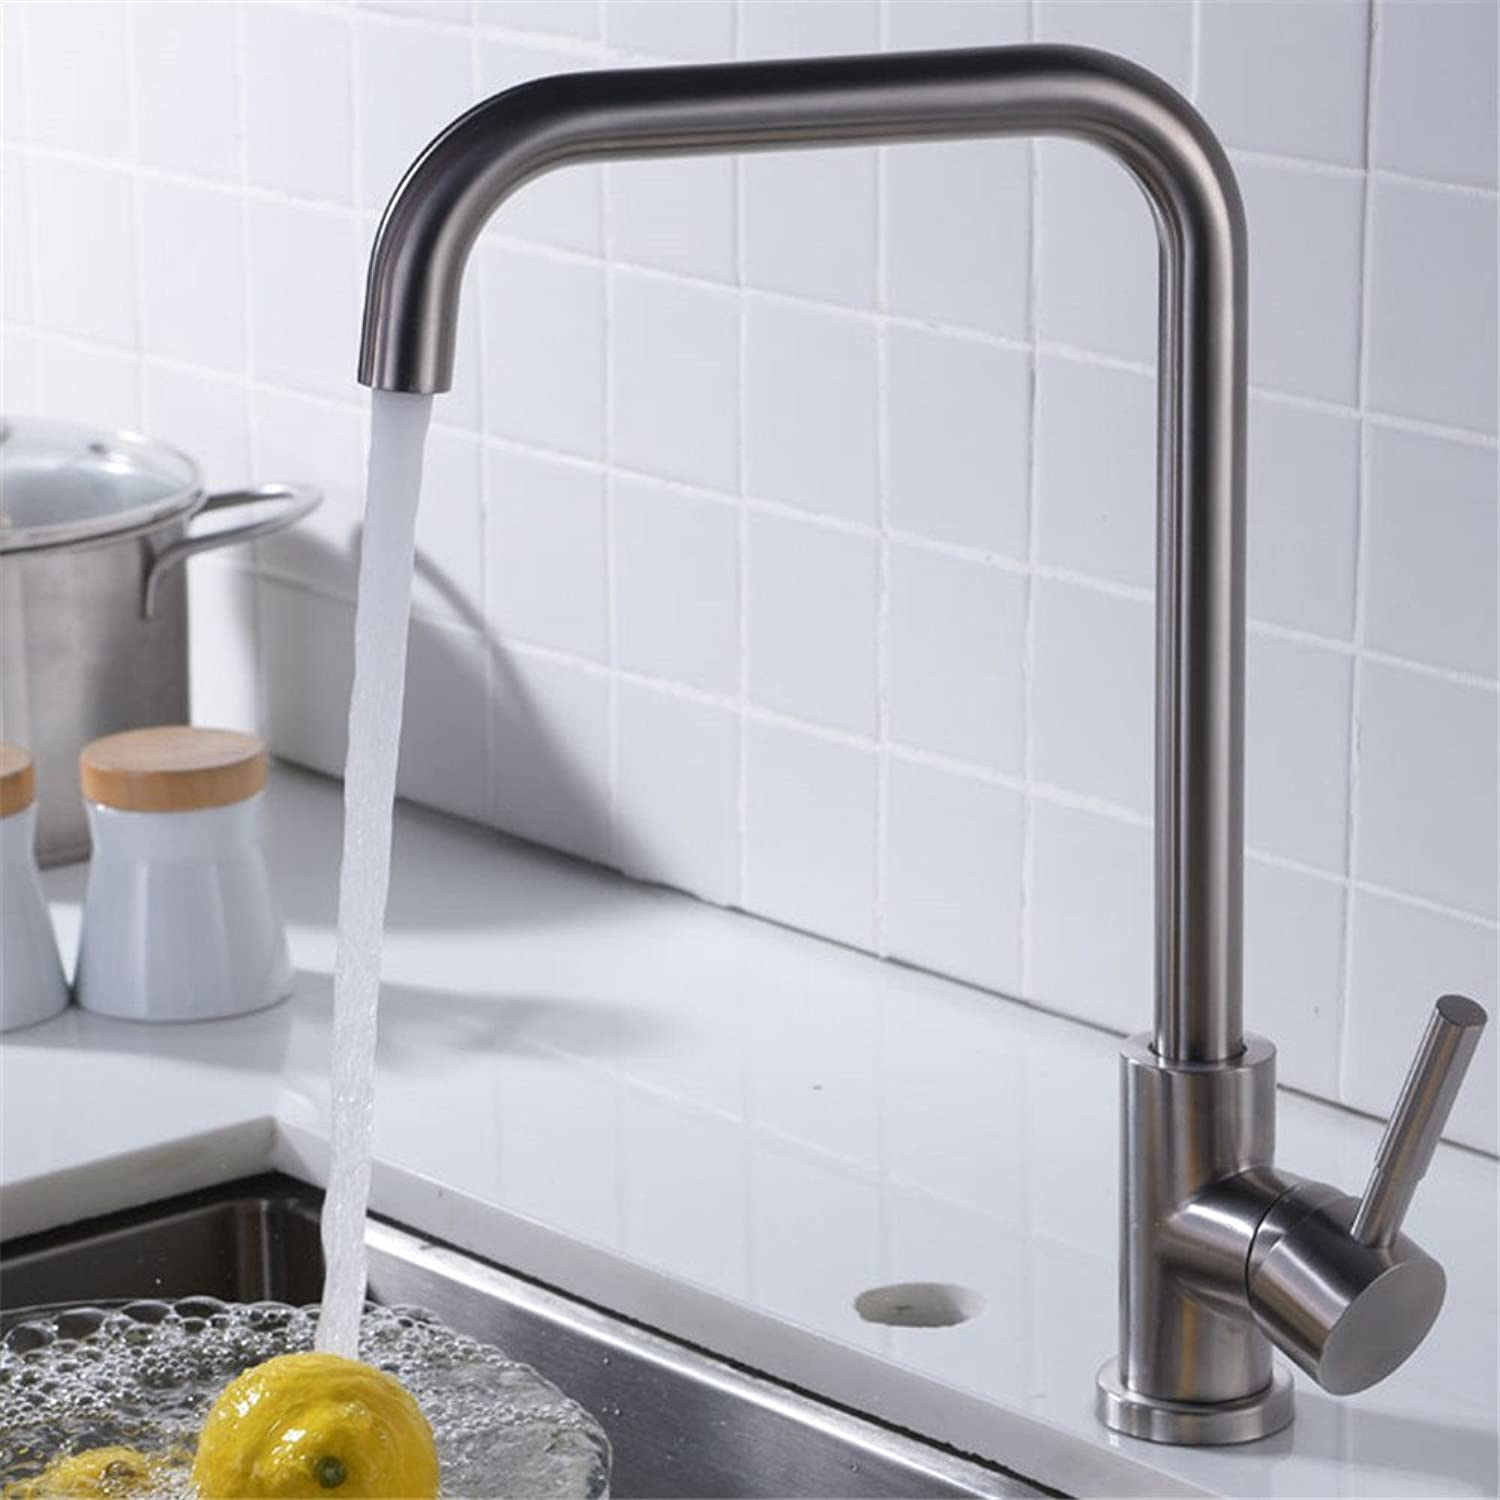 Decorry Hot and Cold Wash Basin Faucet Faucet Stainless Steel Single Single Hole Kitchen Faucet Ceramic Valve Core